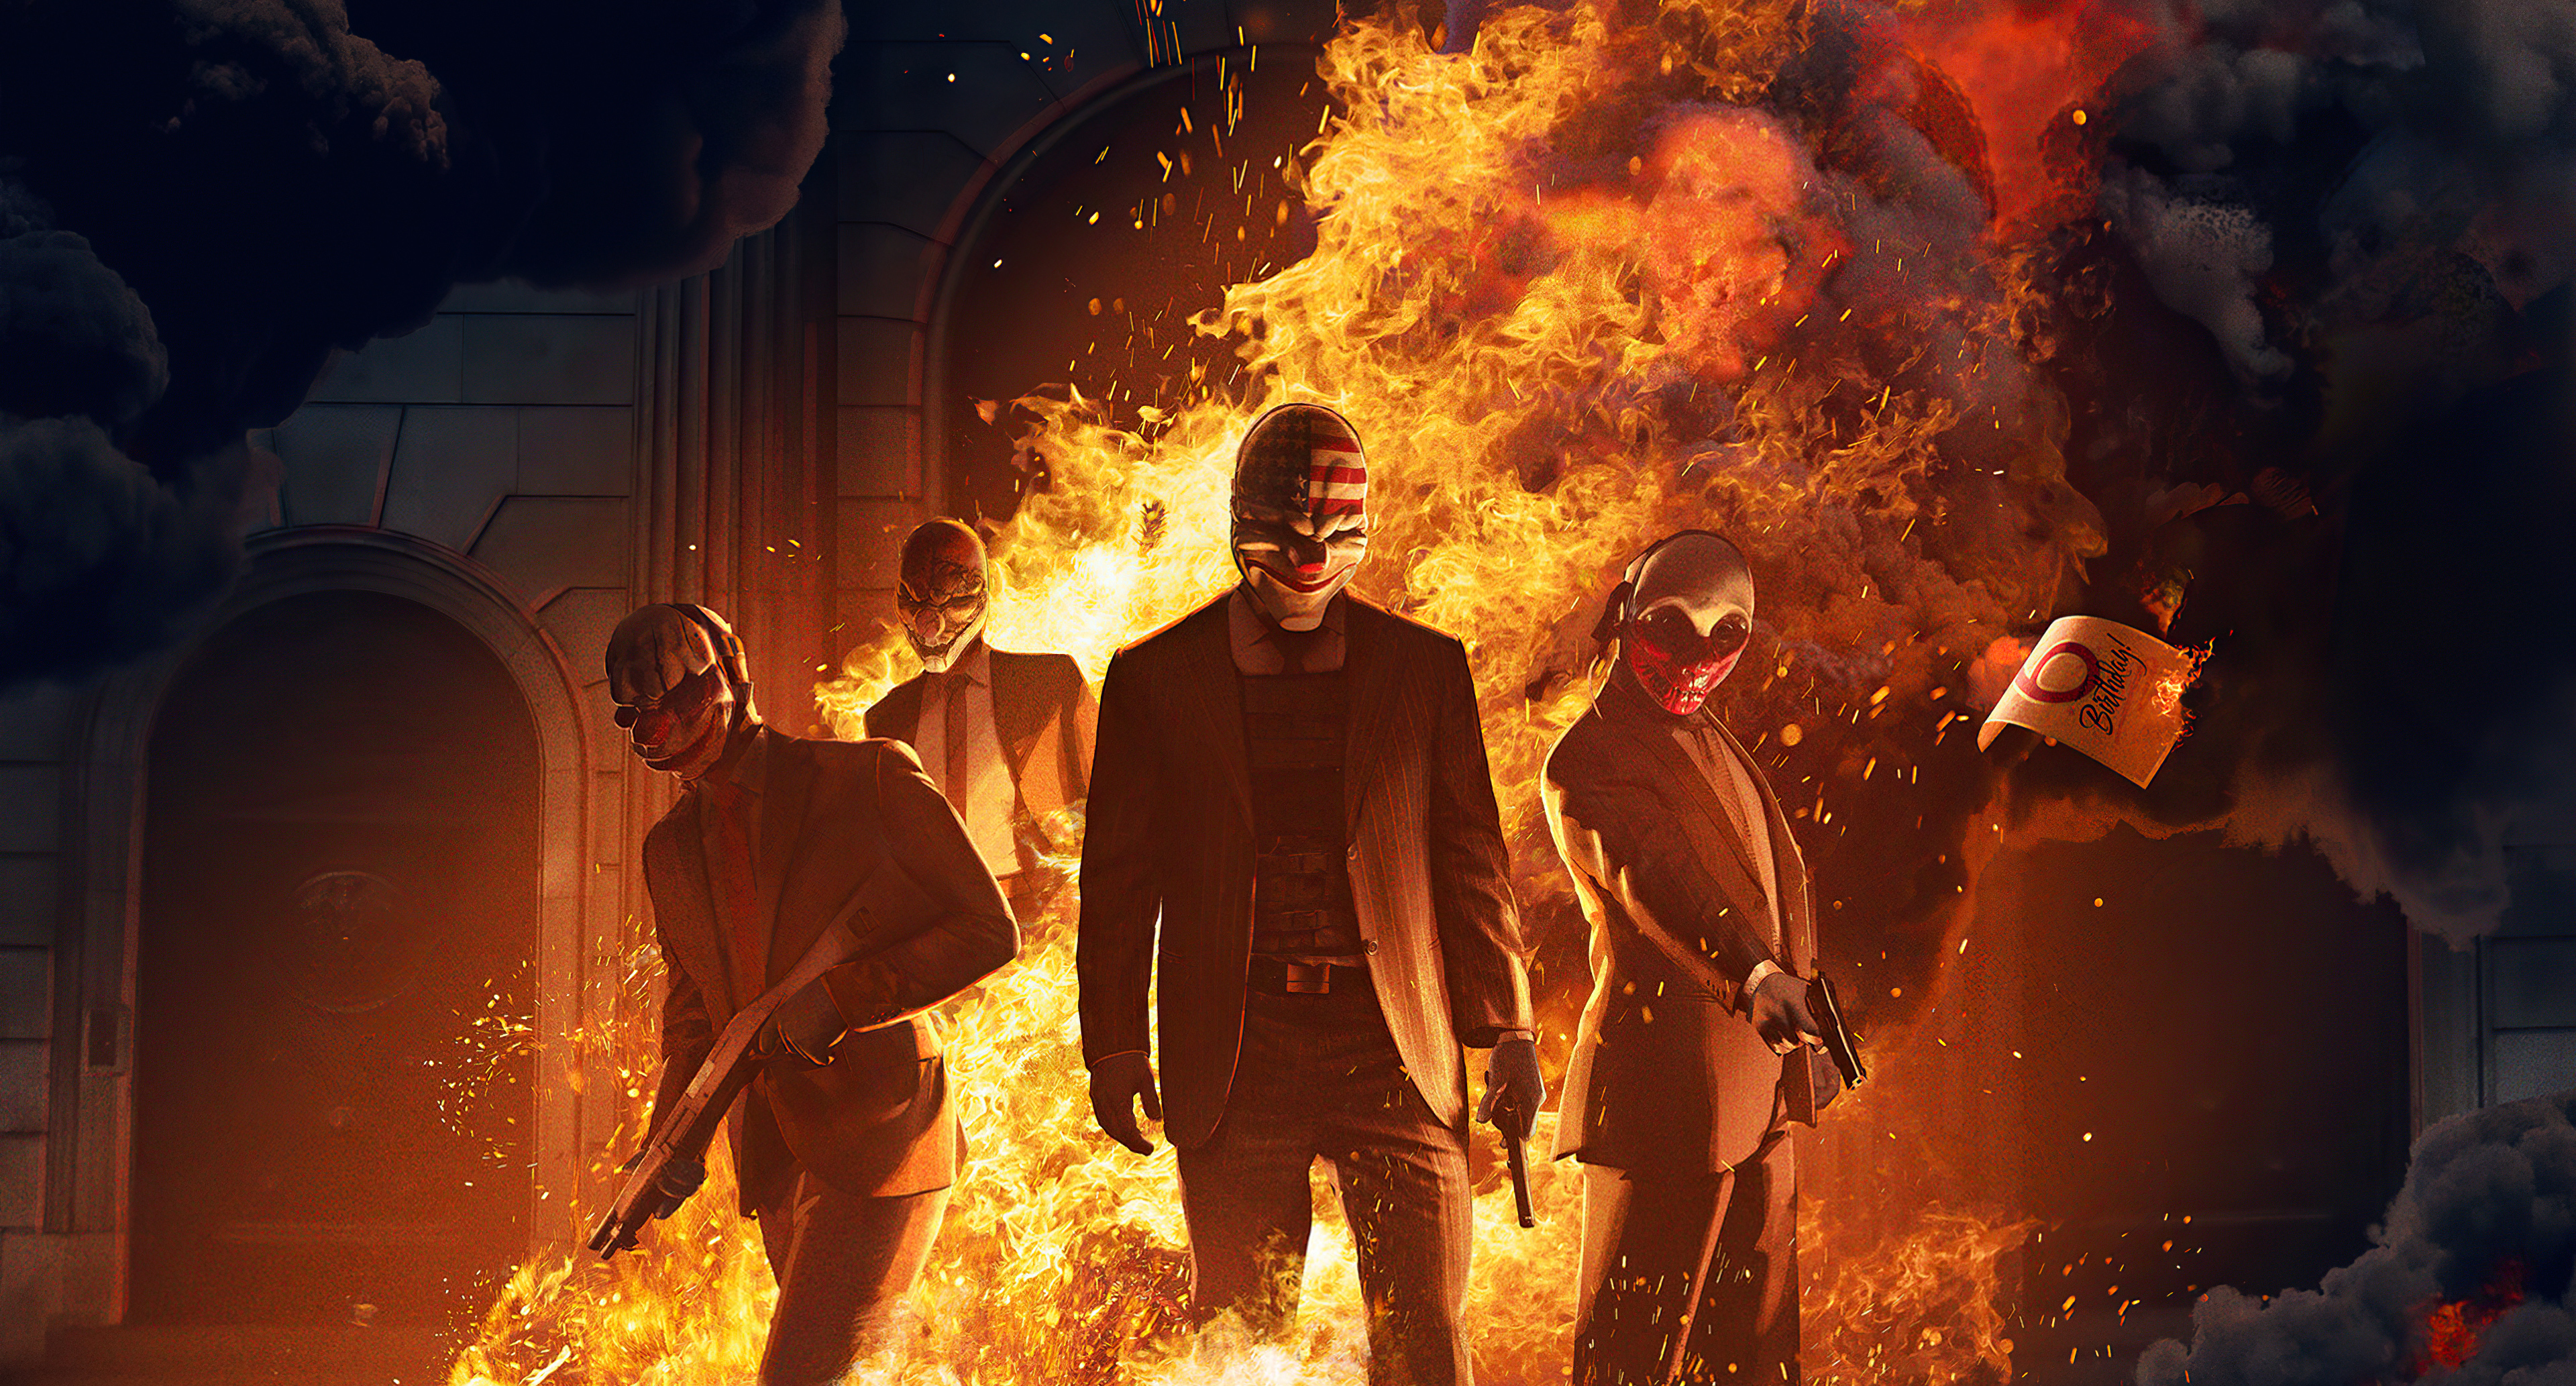 2021 payday 2 4k 1628453438 - 2021 Payday 2 4k - 2021 Payday 2 4k wallpapers